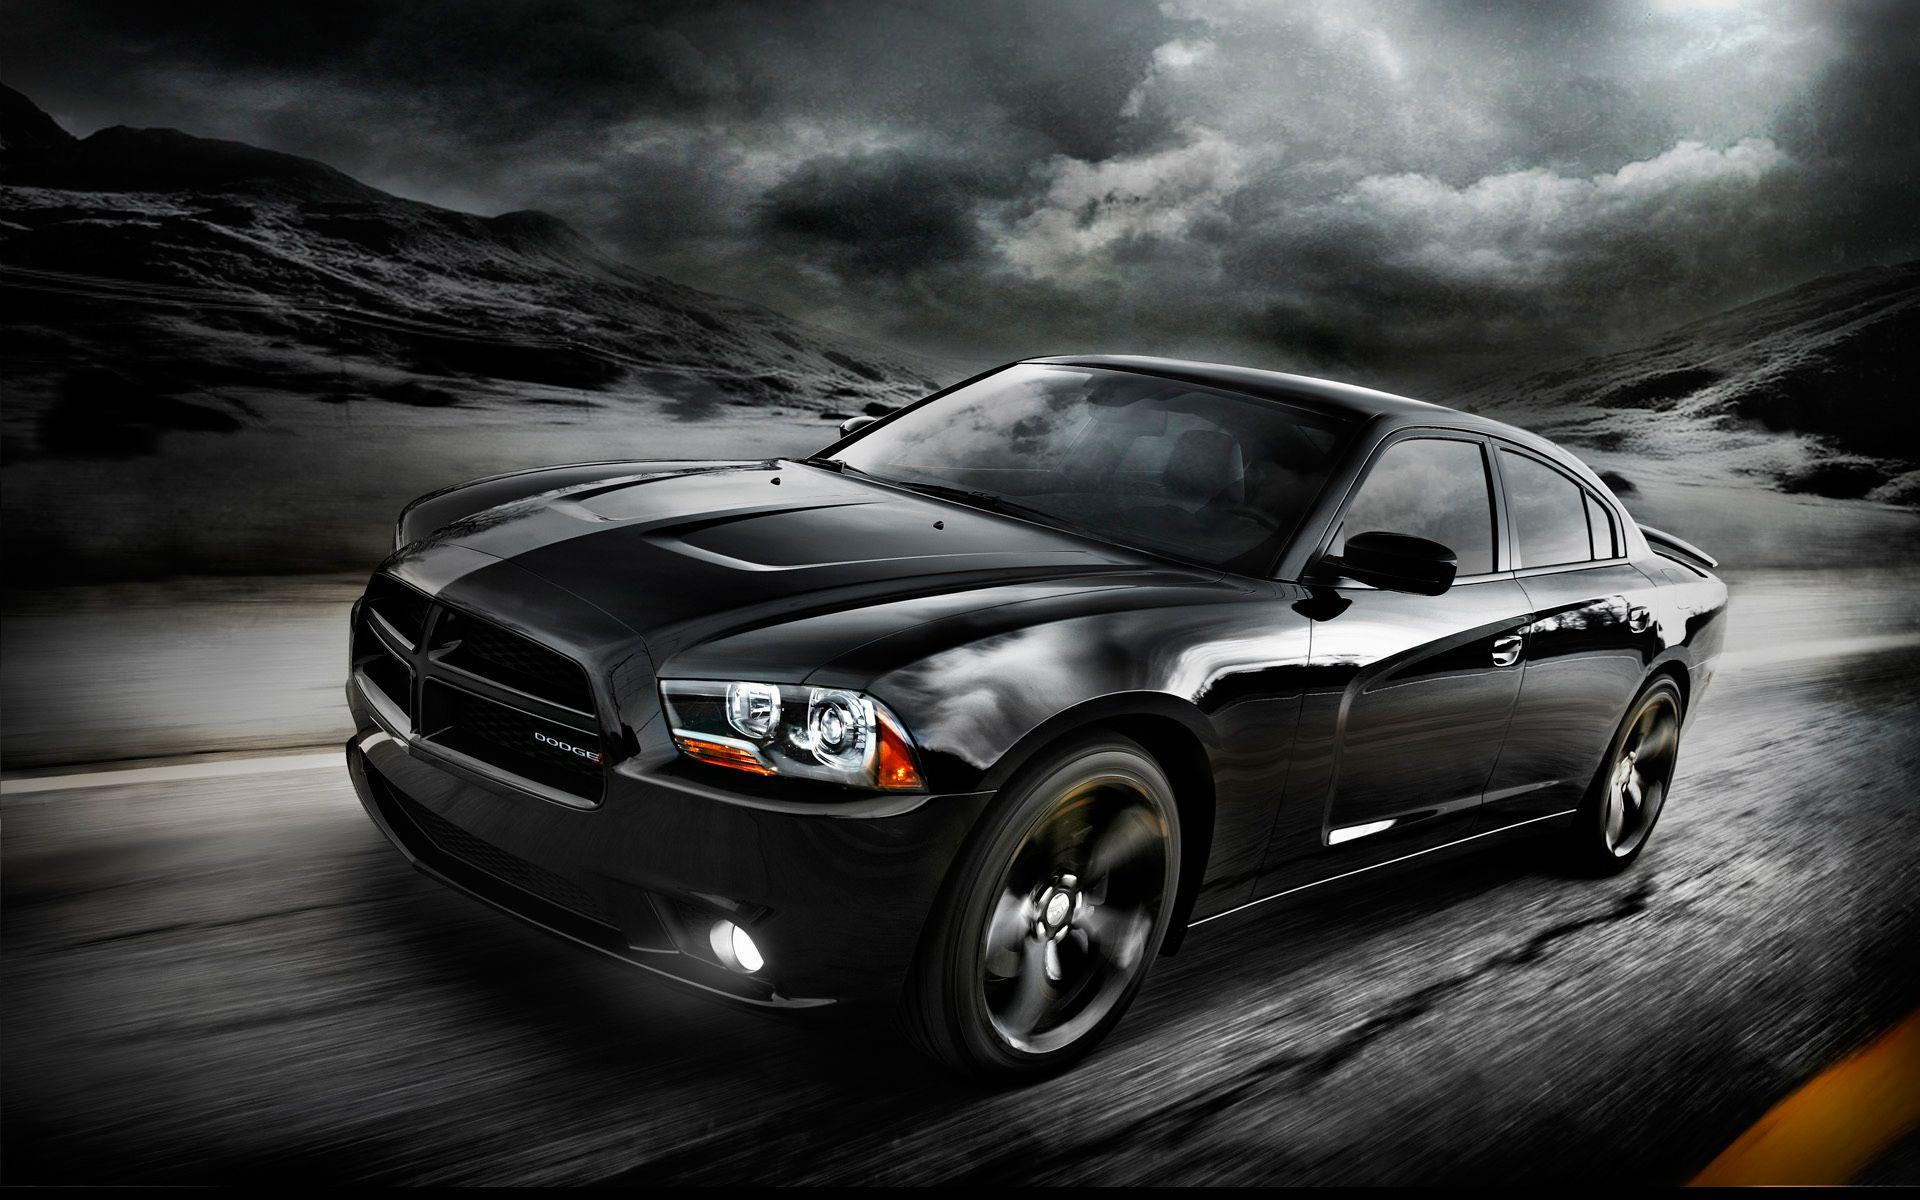 2012 Dodge Charger Wallpapers